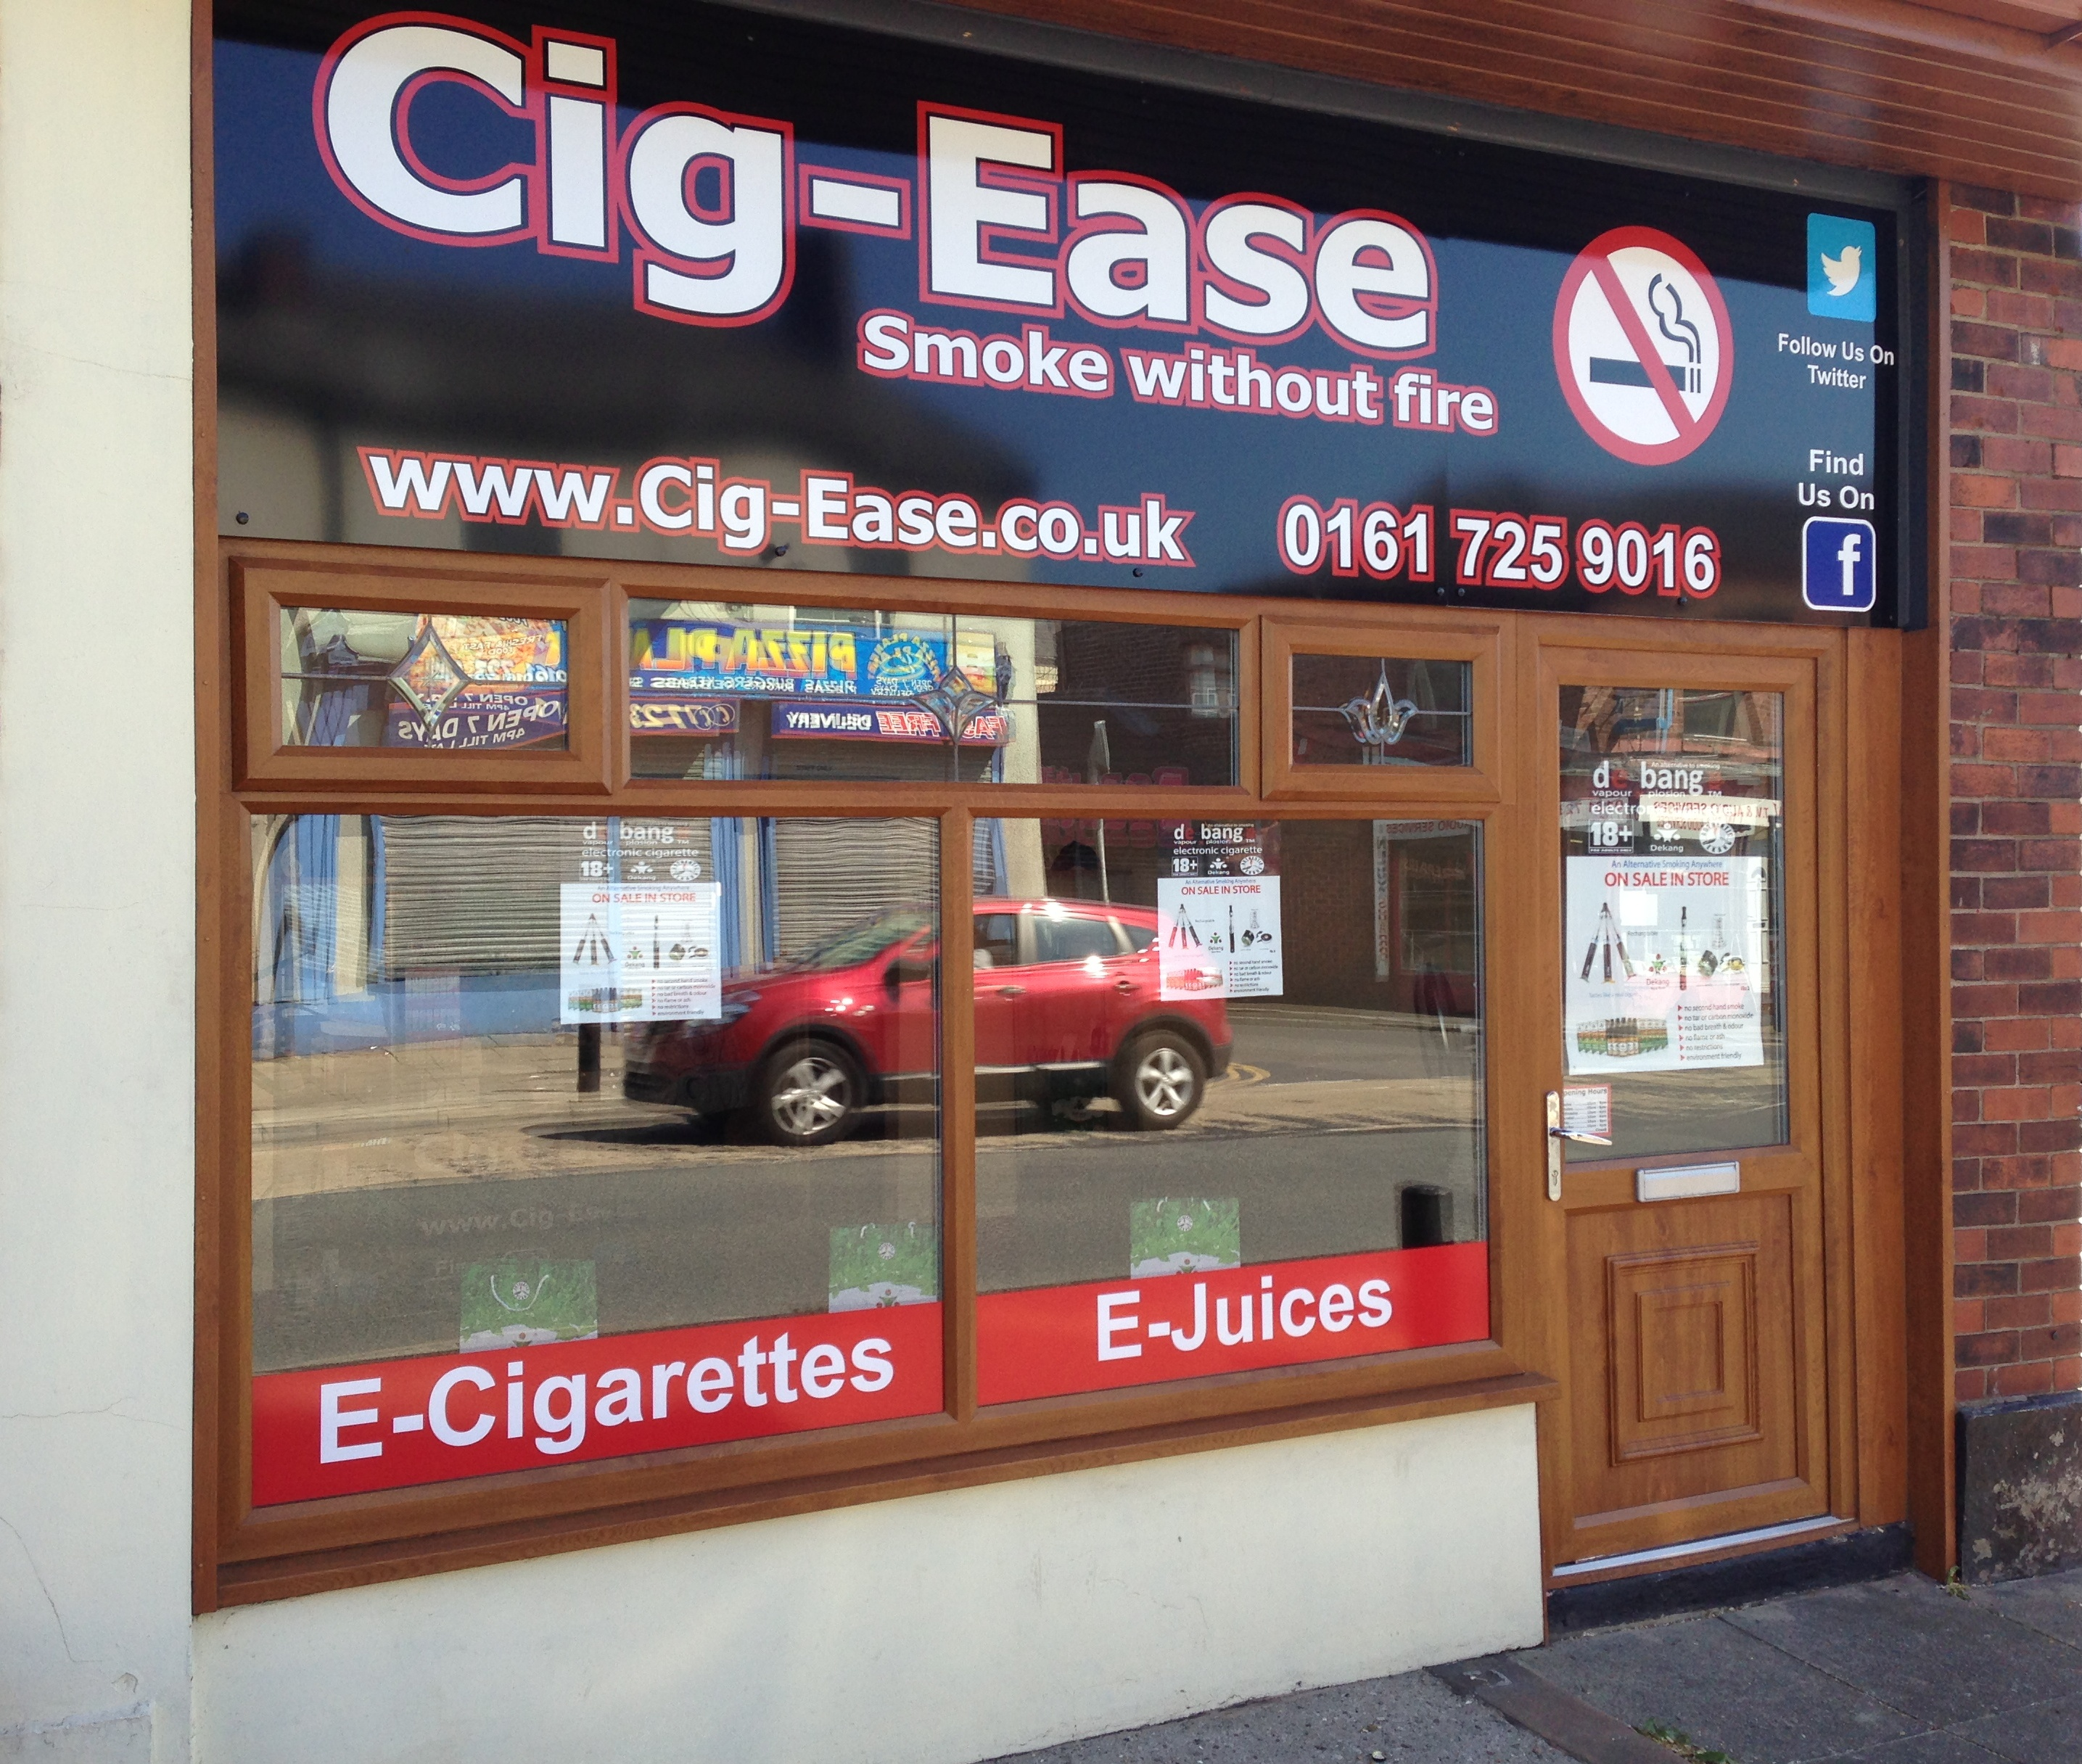 Cig Ease Shop Front, E-Cigs and E-Liquids